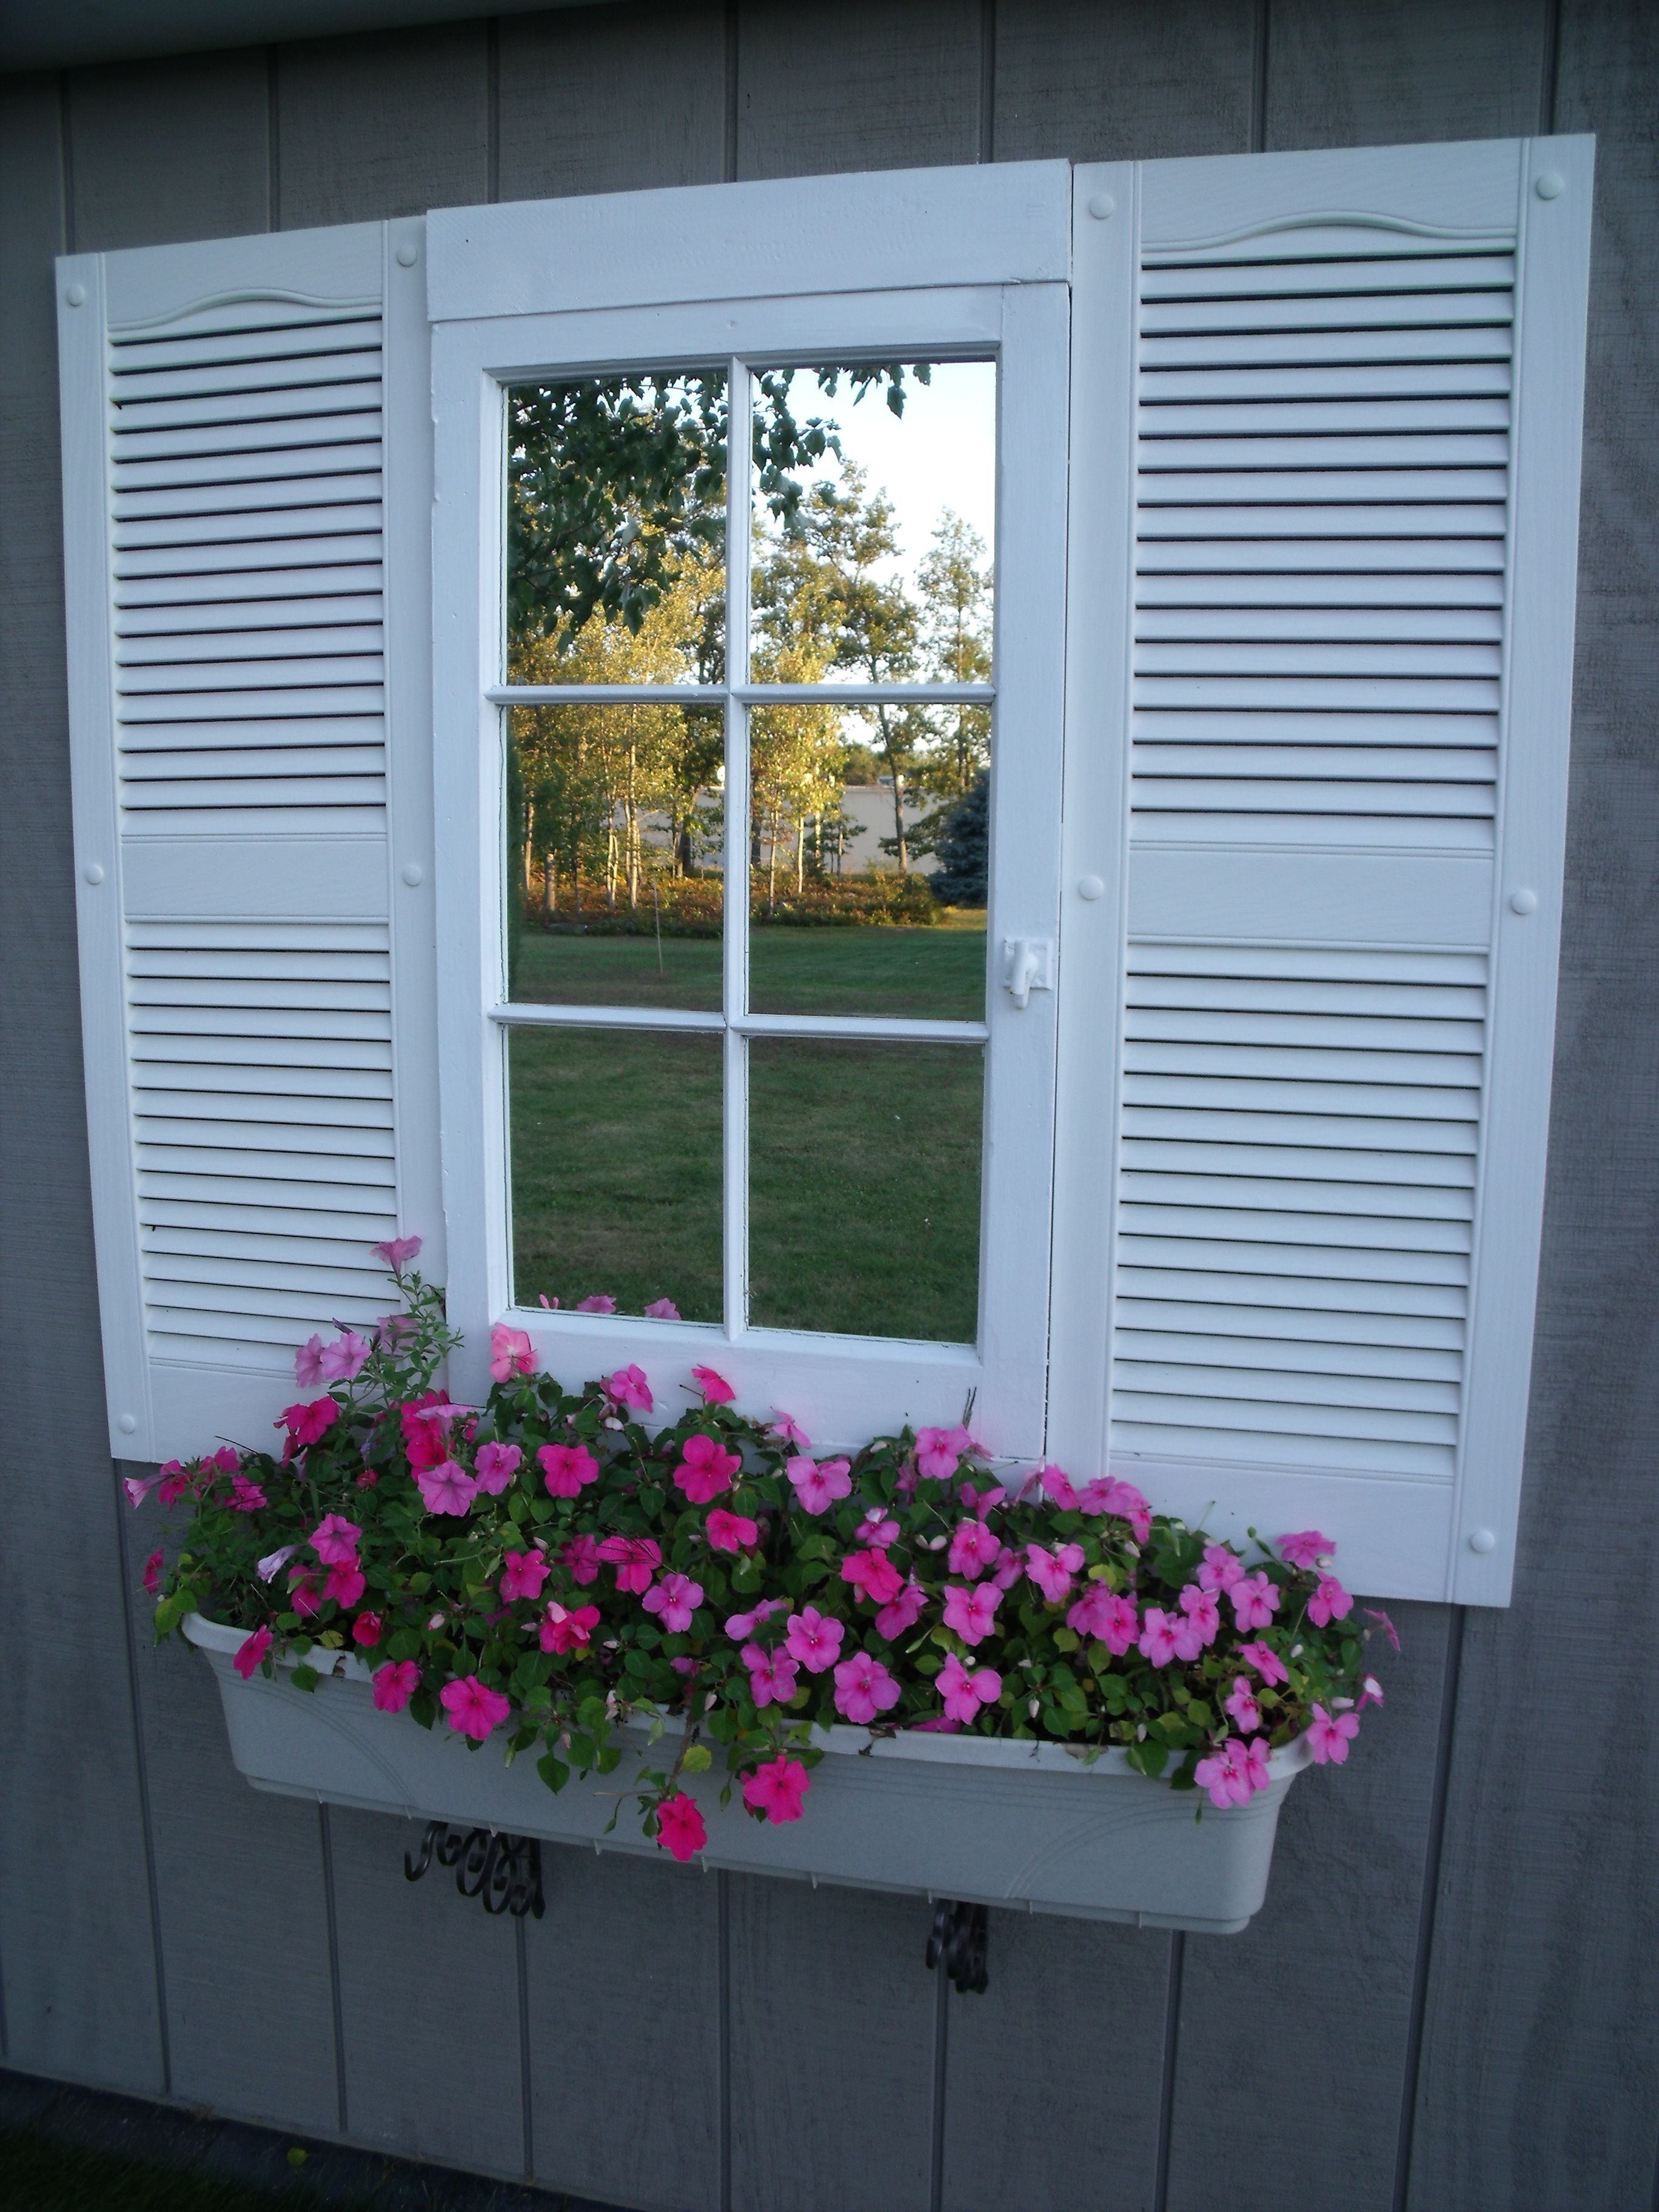 Window Flower Box Using Shutter And Old Window For Outside On Our